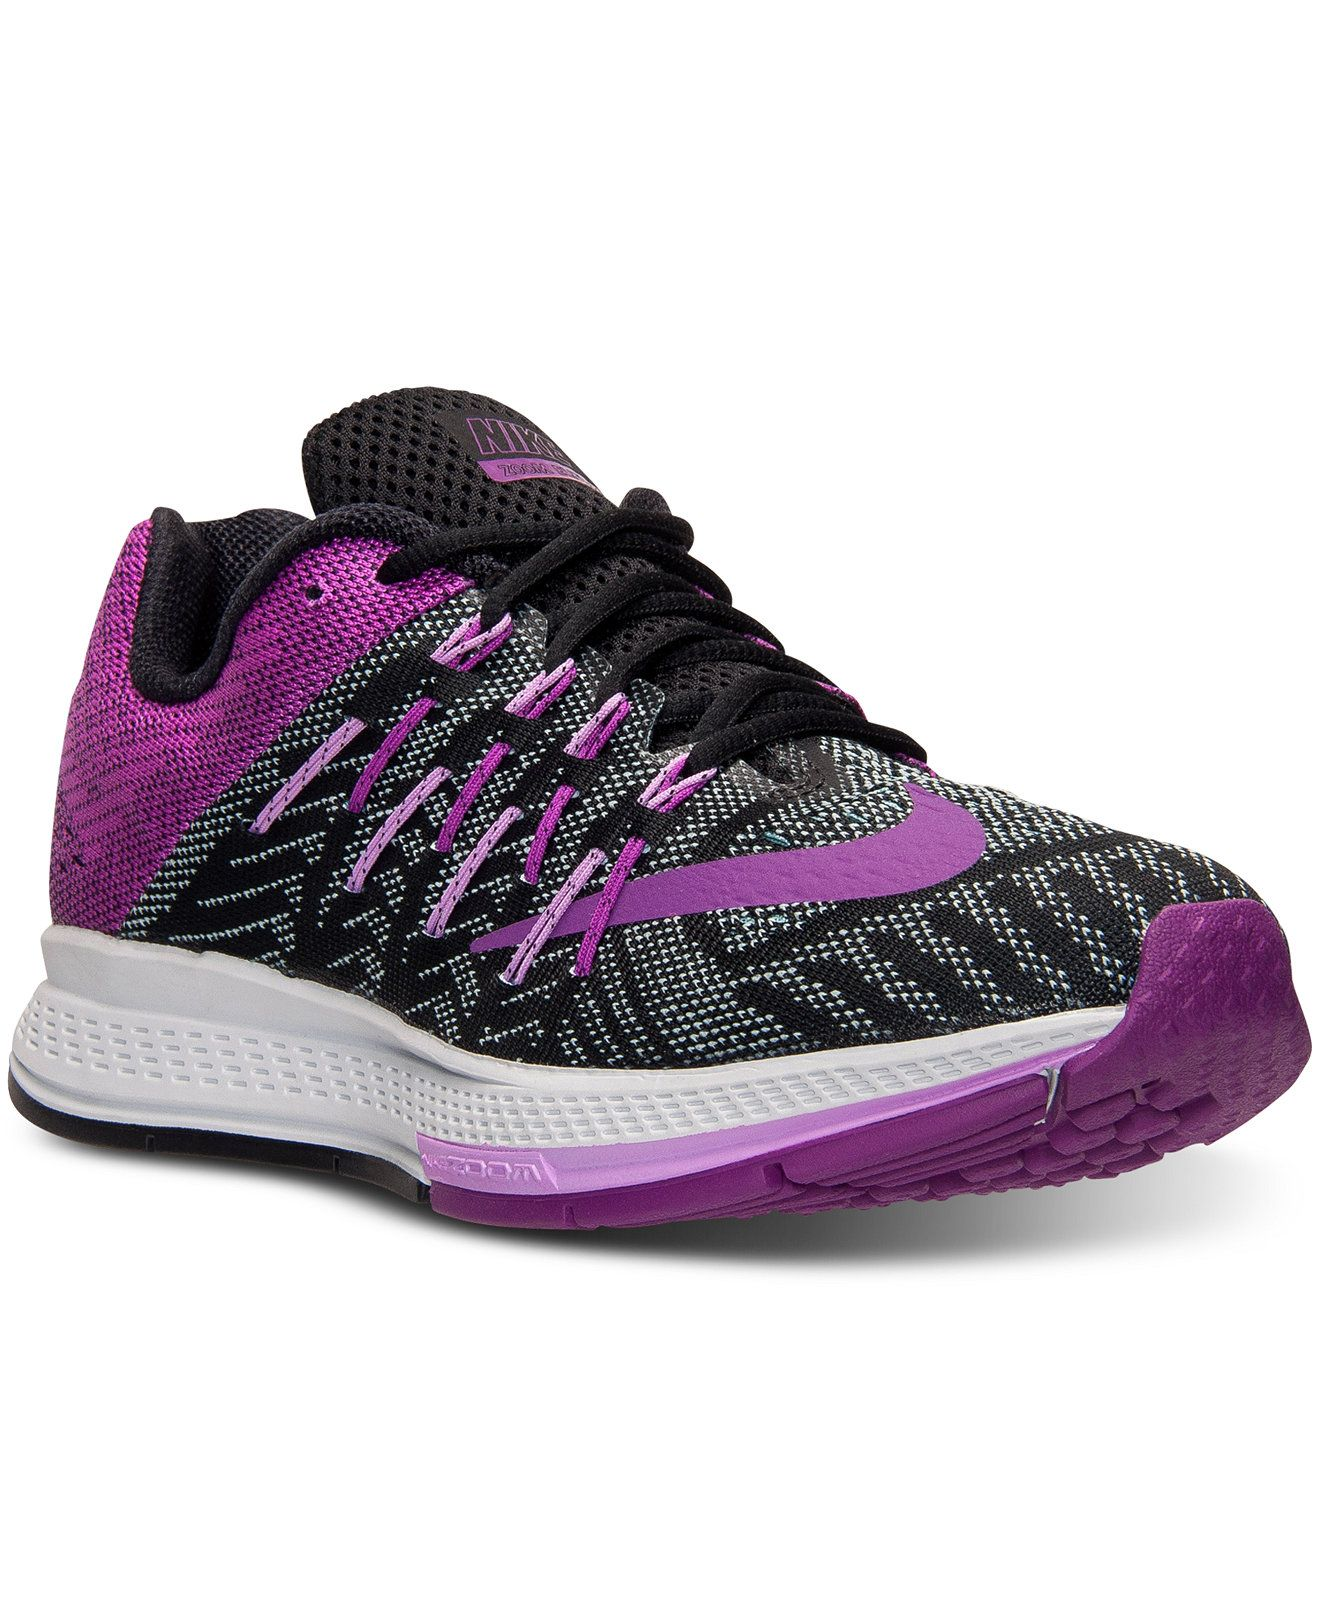 hot sale online c9e9b 23e92 Nike Women's Air Zoom Elite 8 Running Sneakers from Finish ...